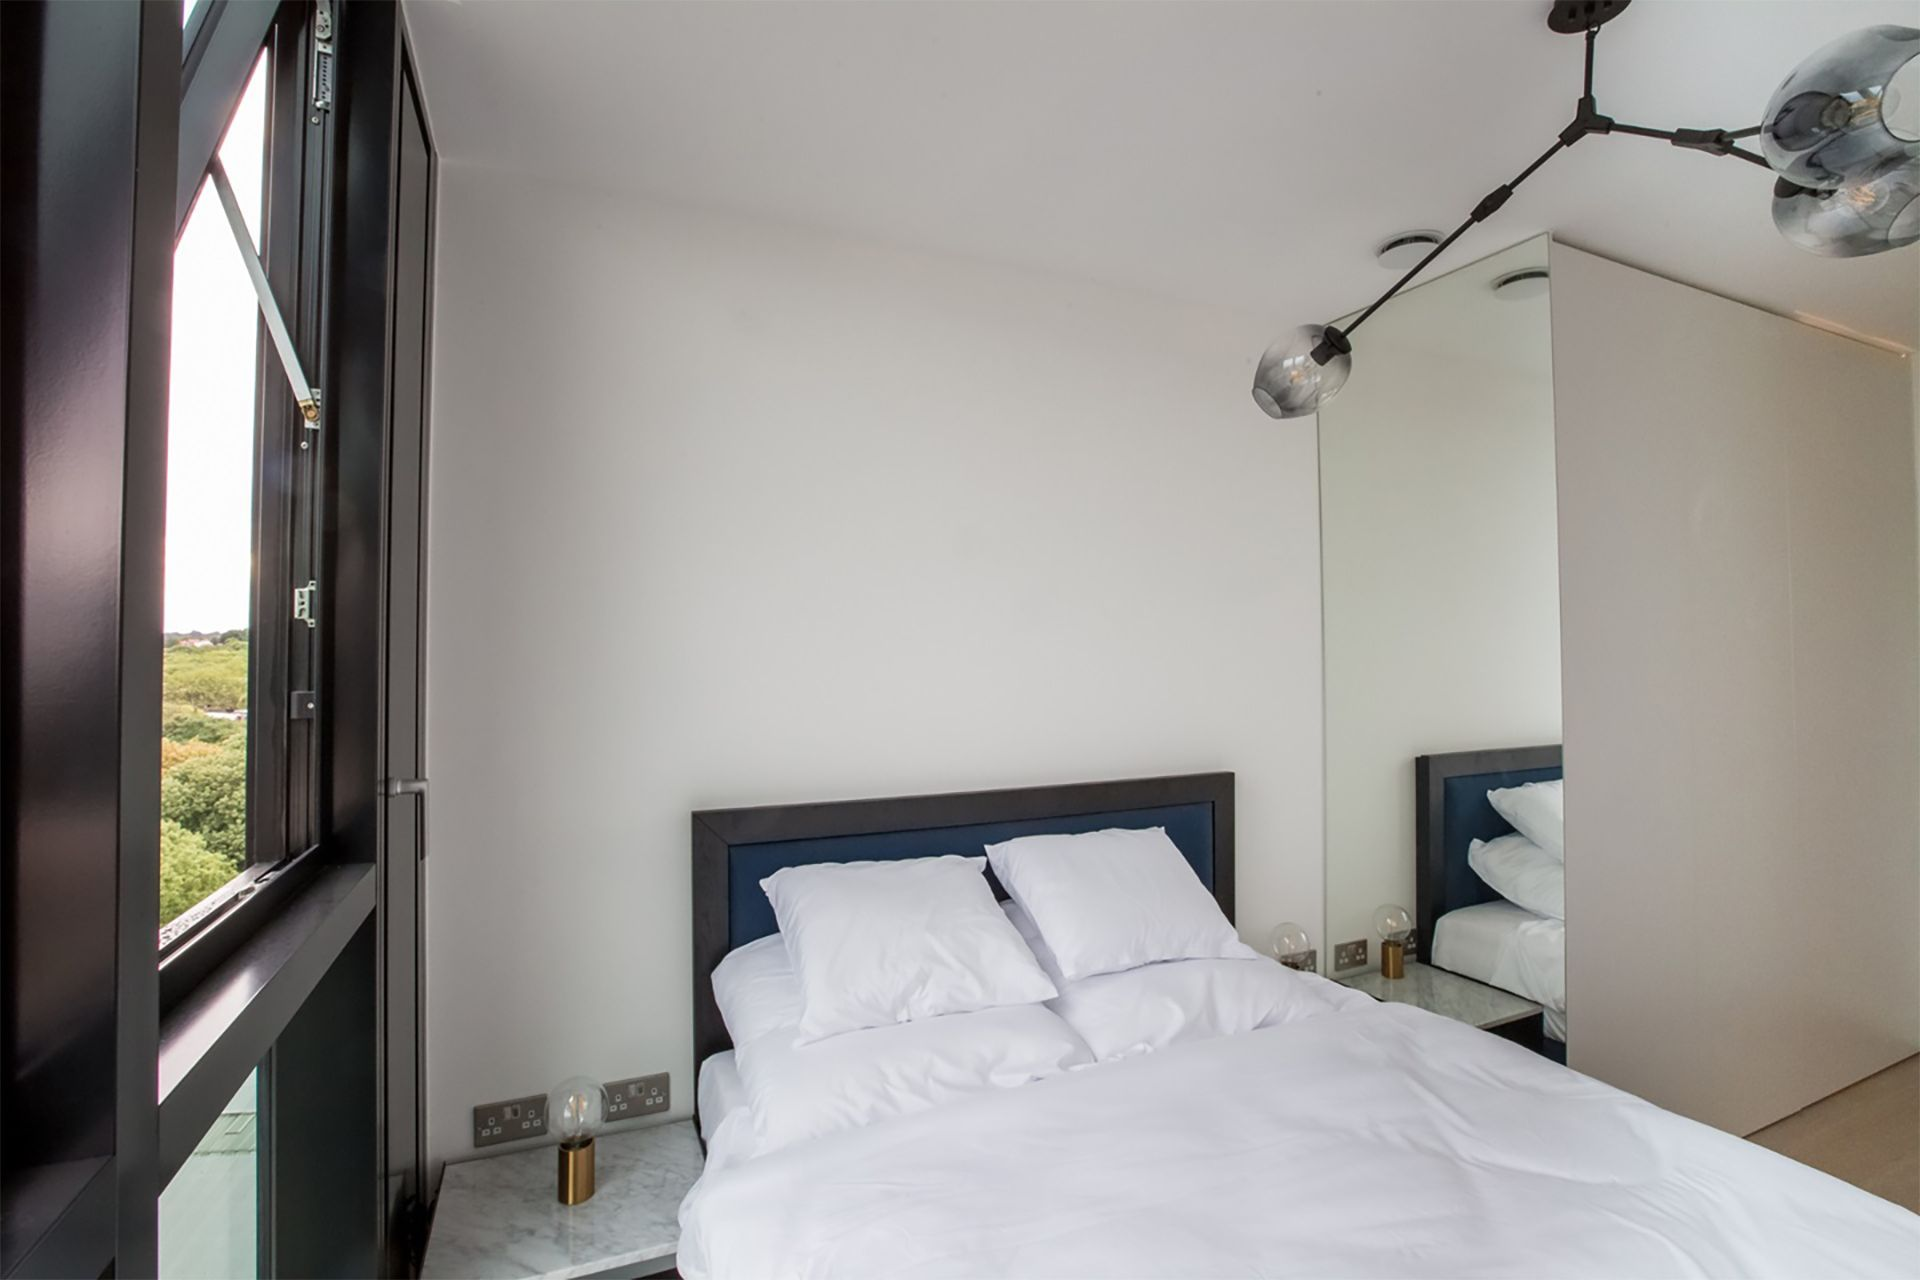 1 Bedroom apartment to rent in London HIL-HH-0802